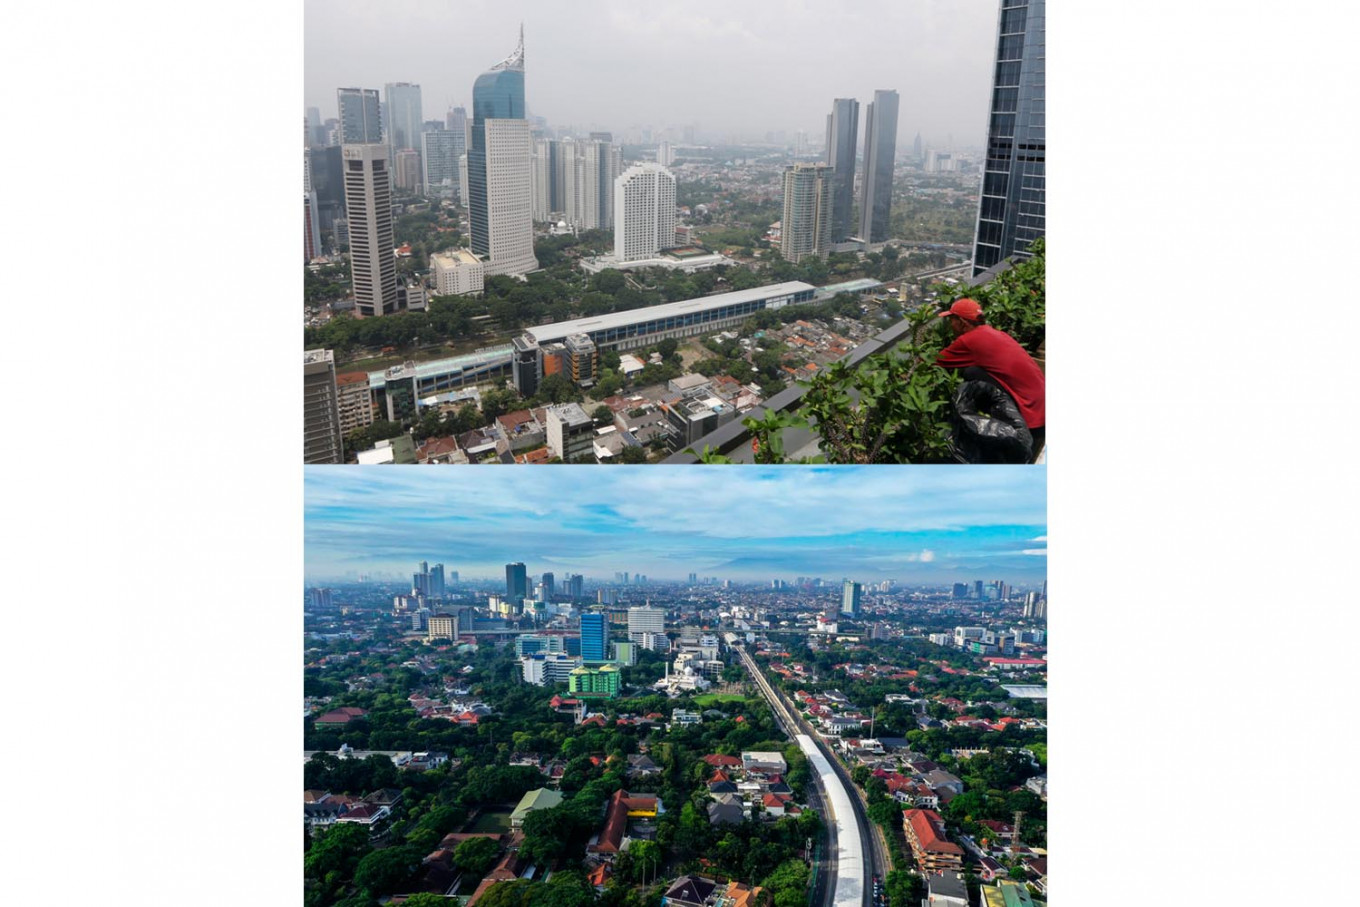 Cleaner air gives Jakartans rare view on nearby mountains